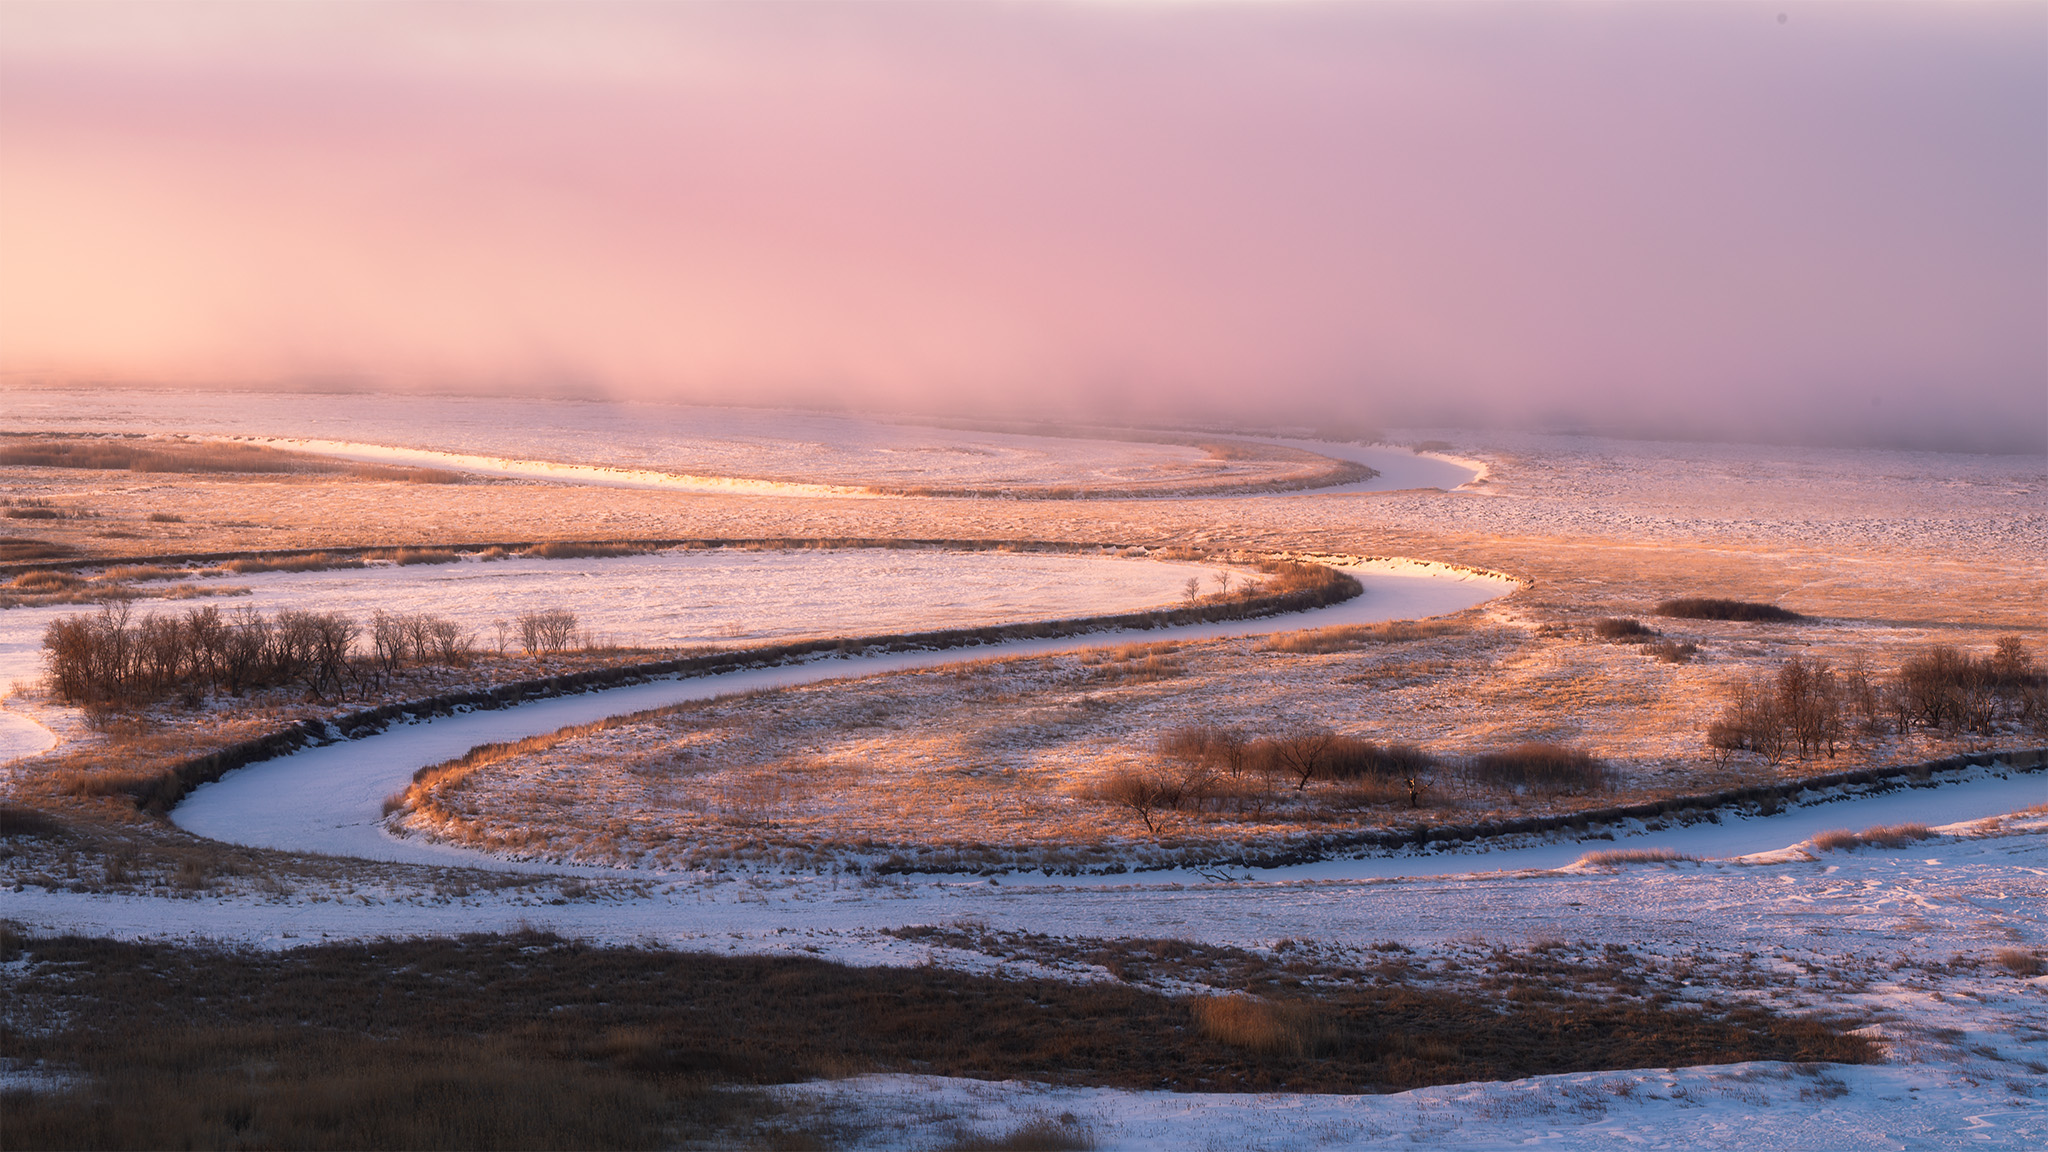 Light hits the Saskatchewan landscape as a frozen river winds through the scene